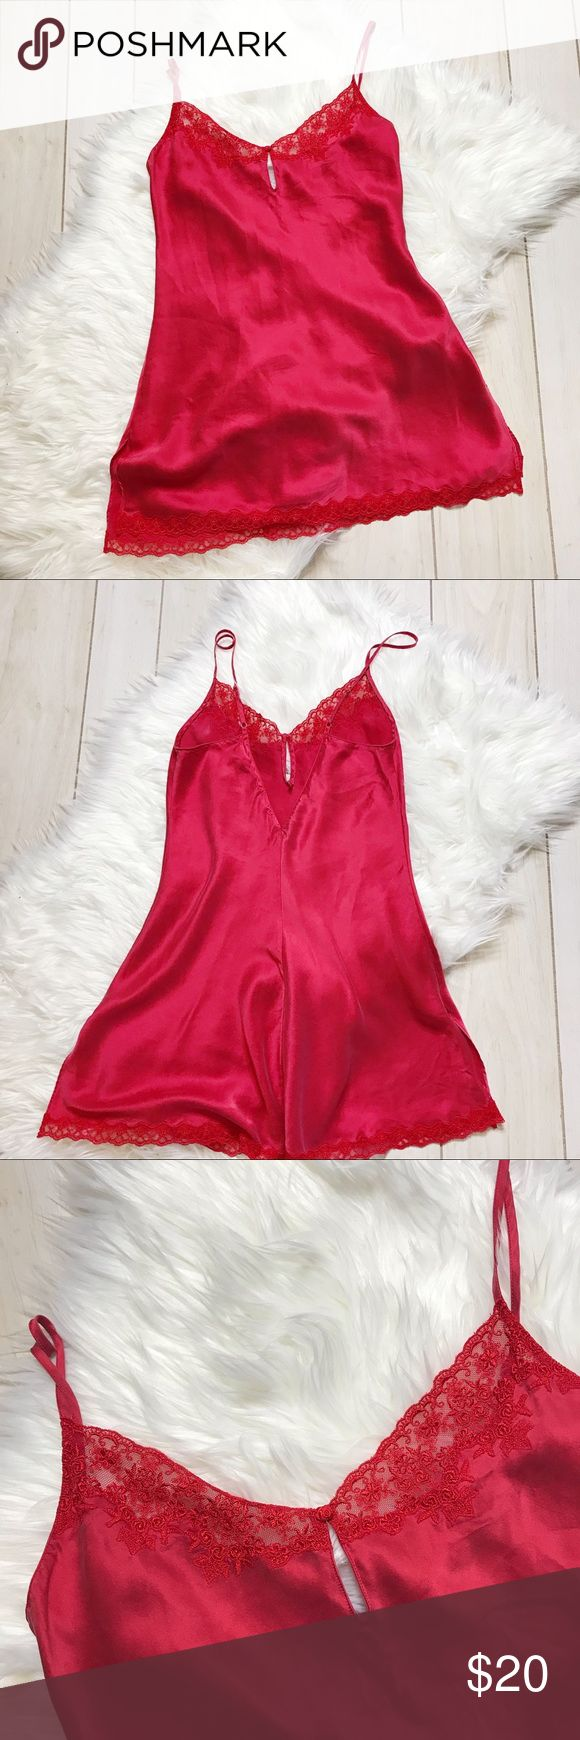 Victoria S Secret Red Silk Lace Trim Chemise Slip In 2020 Chemise Red Silk Lace Trim